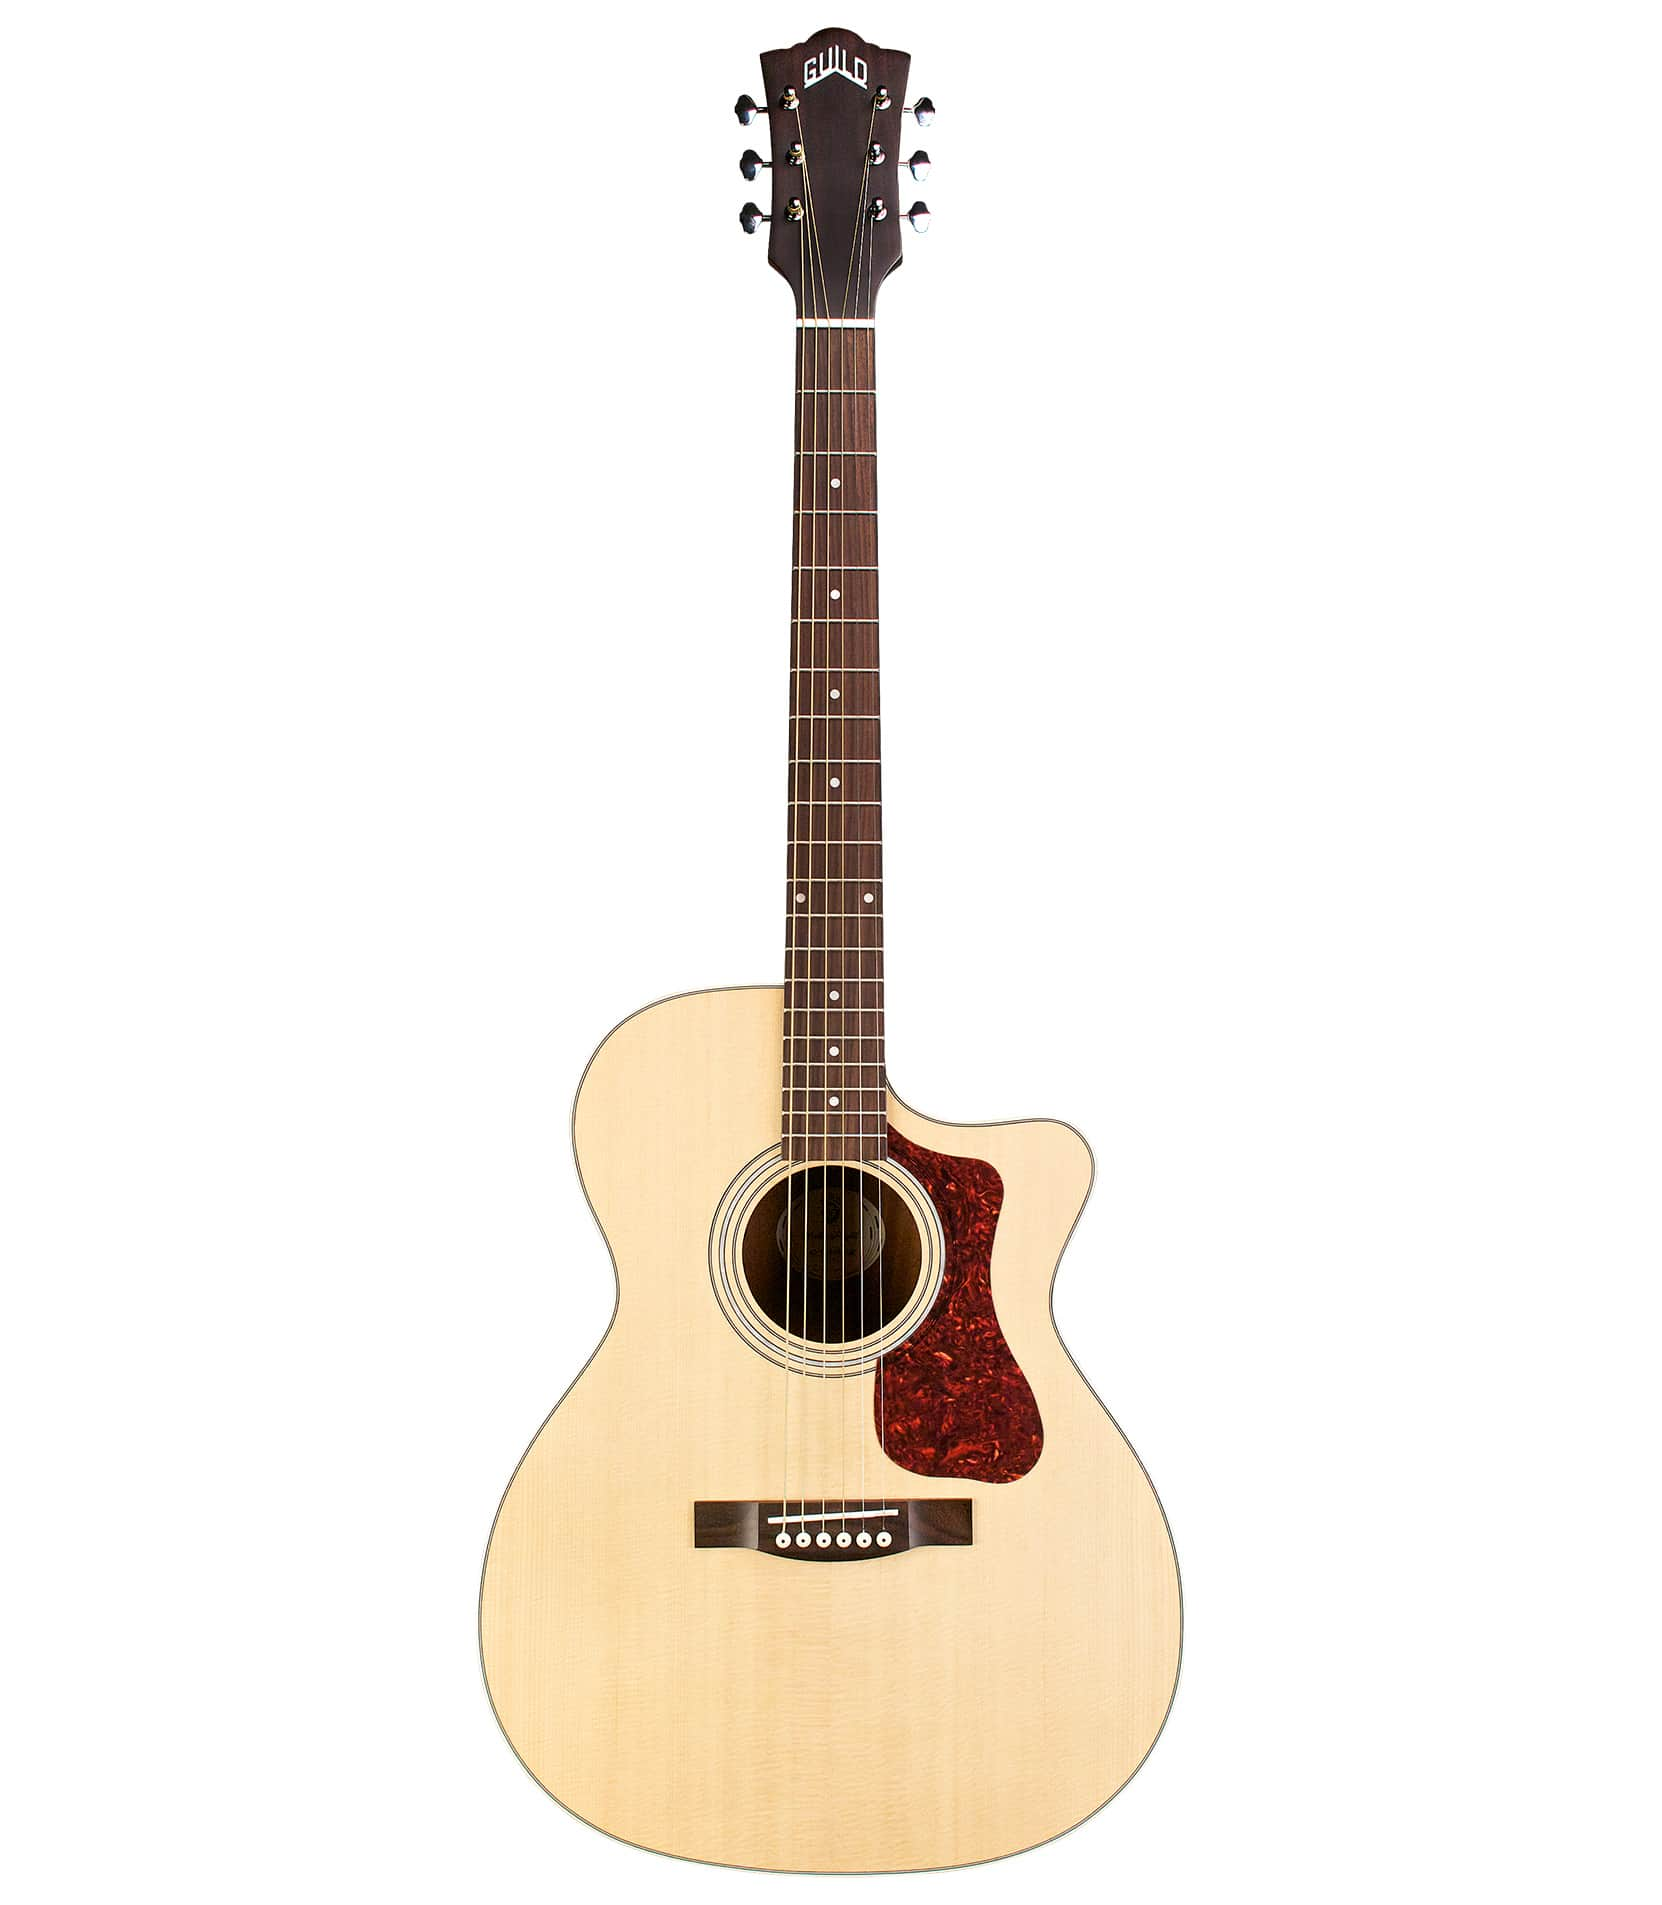 Buy guild - OM240CE Orchestra Cutaway Acoustic Natural Finish